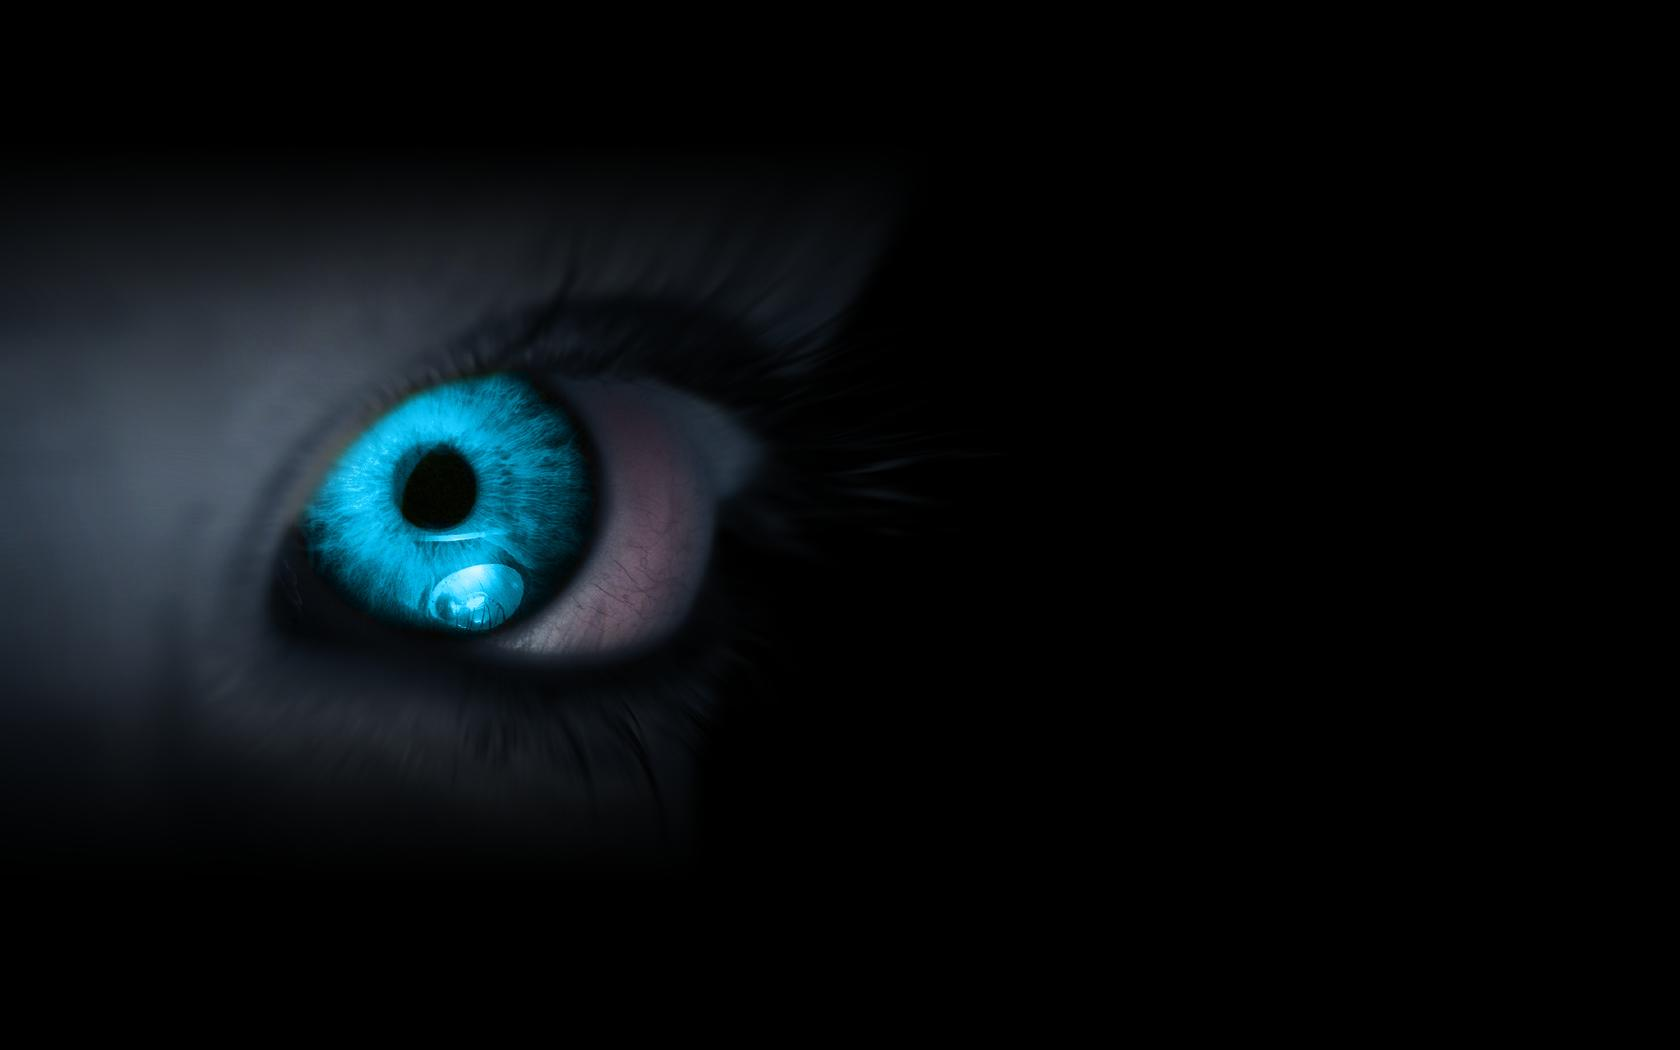 Download Blue Eye Wallpaper Wallpapers 1680x1050